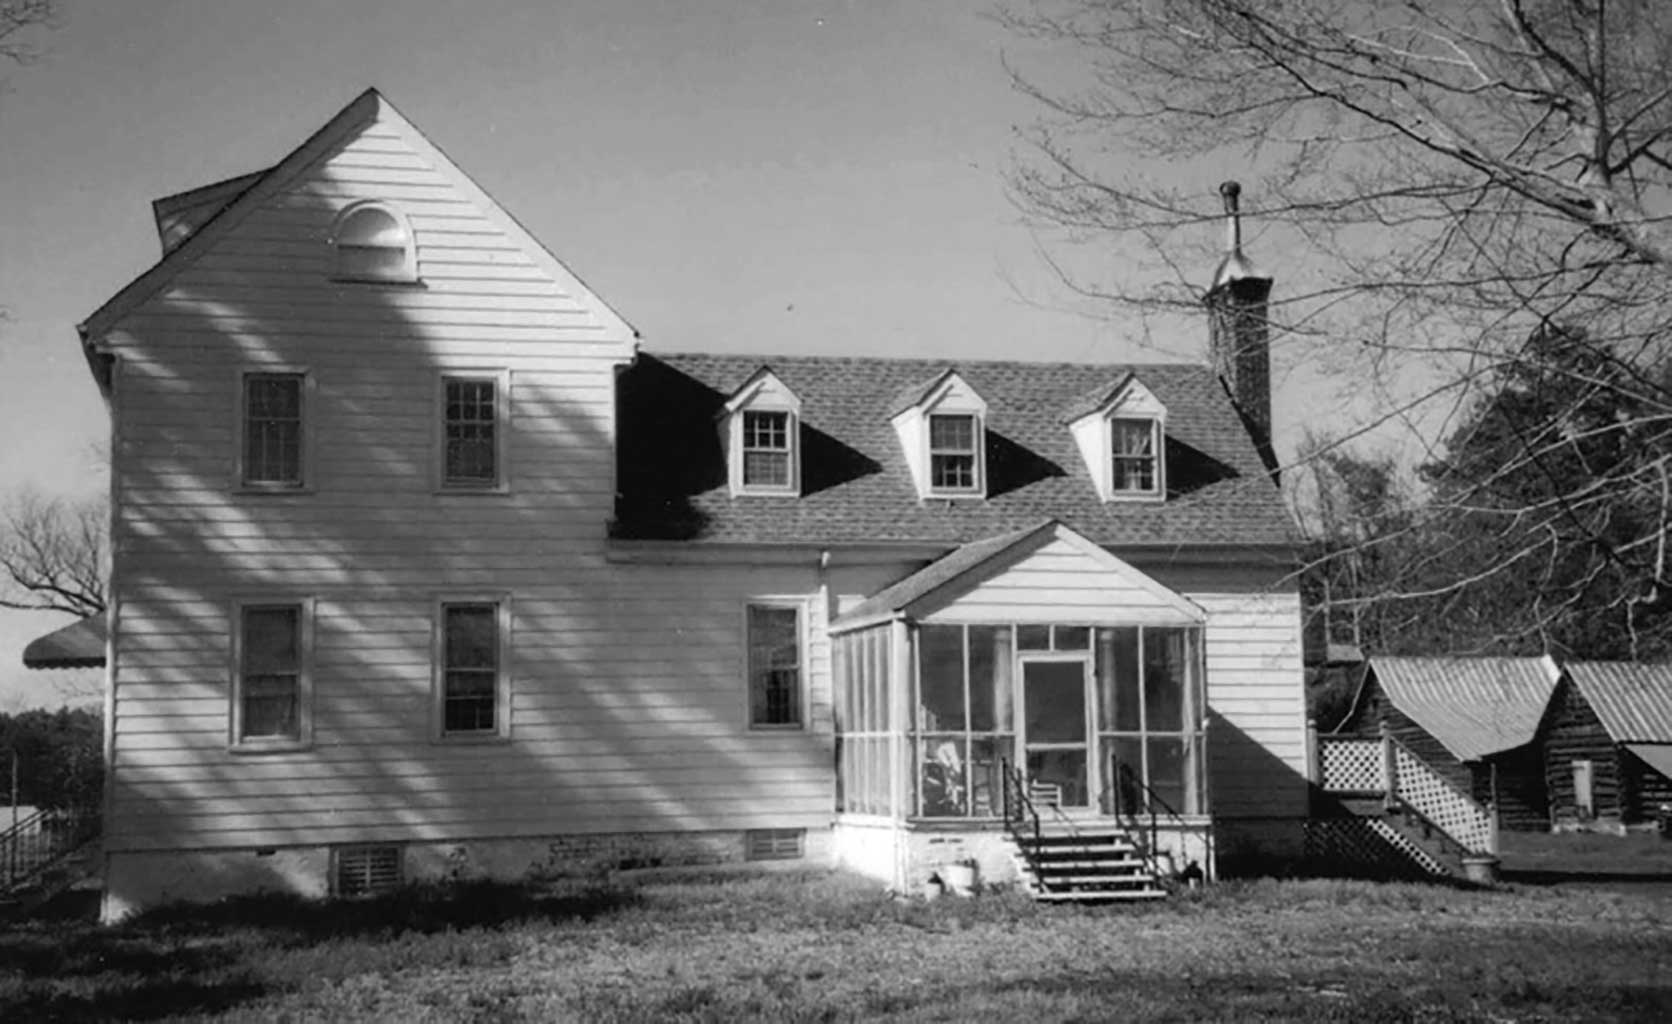 pruden-house-quaker-road-betty-stagg-photo